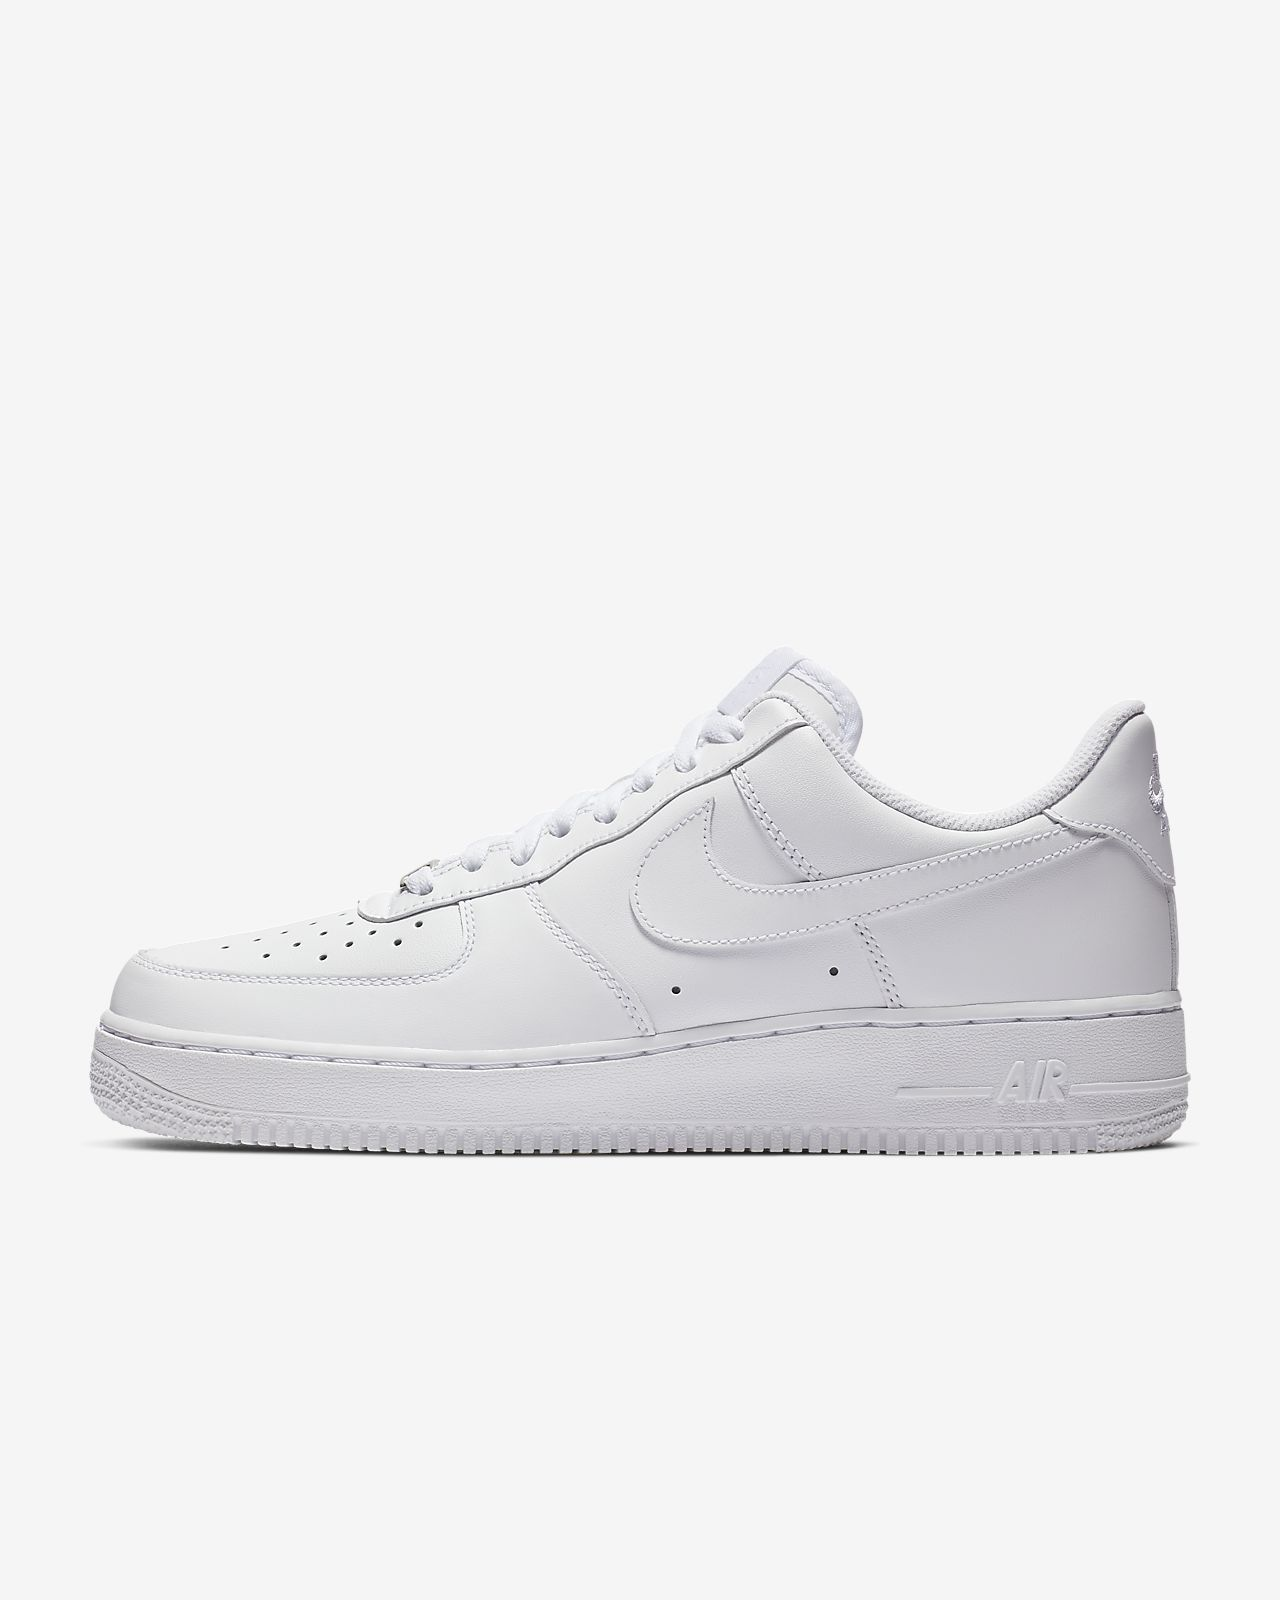 ccf000341 Nike Air Force 1 '07 Women's Shoe. Nike.com